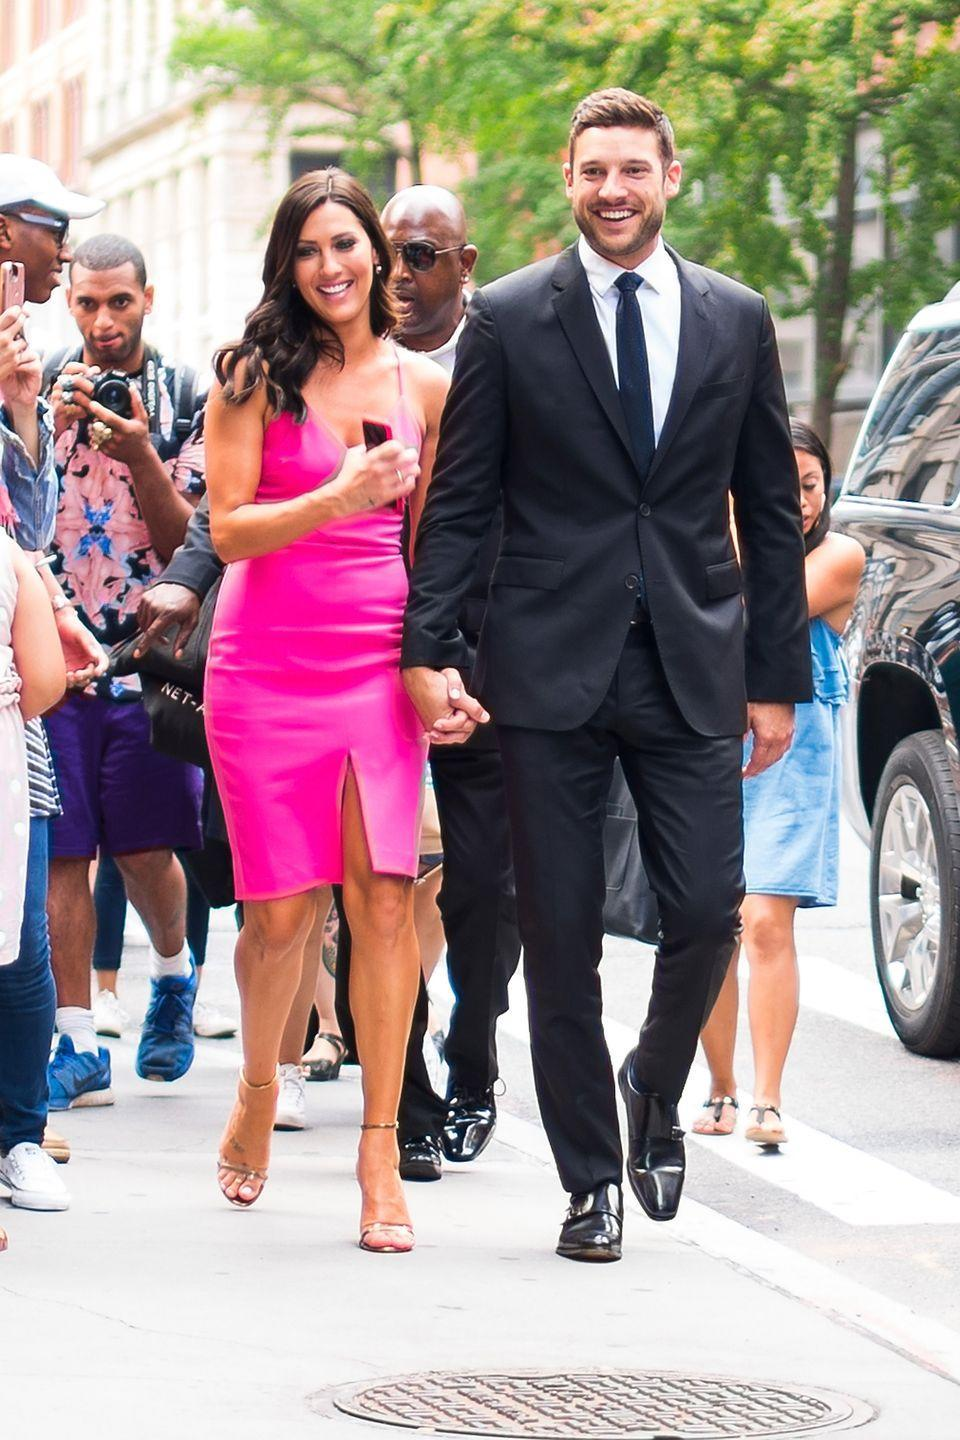 "<p>Becca Kufrin and Garrett Yrigoyen got engaged during Becca's season of <em>The Bachelorette </em>and seemed to be going strong for the two years they were engaged. That is, until <a href=""https://www.cosmopolitan.com/entertainment/tv/a32815915/becca-kufrin-disagrees-garrett-yrigoyen-police-force-instagram/"" rel=""nofollow noopener"" target=""_blank"" data-ylk=""slk:Garrett made a hefty pro-police statement to his Instagram in light of the George Floyd protests"" class=""link rapid-noclick-resp"">Garrett made a hefty pro-police statement to his Instagram in light of the George Floyd protests </a>back in June. Becca called his post ""tone deaf"" and said she didn't ""align"" with his values, and nearly three months after his comments, she confirmed their split on <em>The Bachelor Happy Hour </em>podcast. ""Garrett and I have decided to end our engagement,"" she said.""It wasn't based solely off of one Instagram post or somebody else's opinions or comments.""</p>"